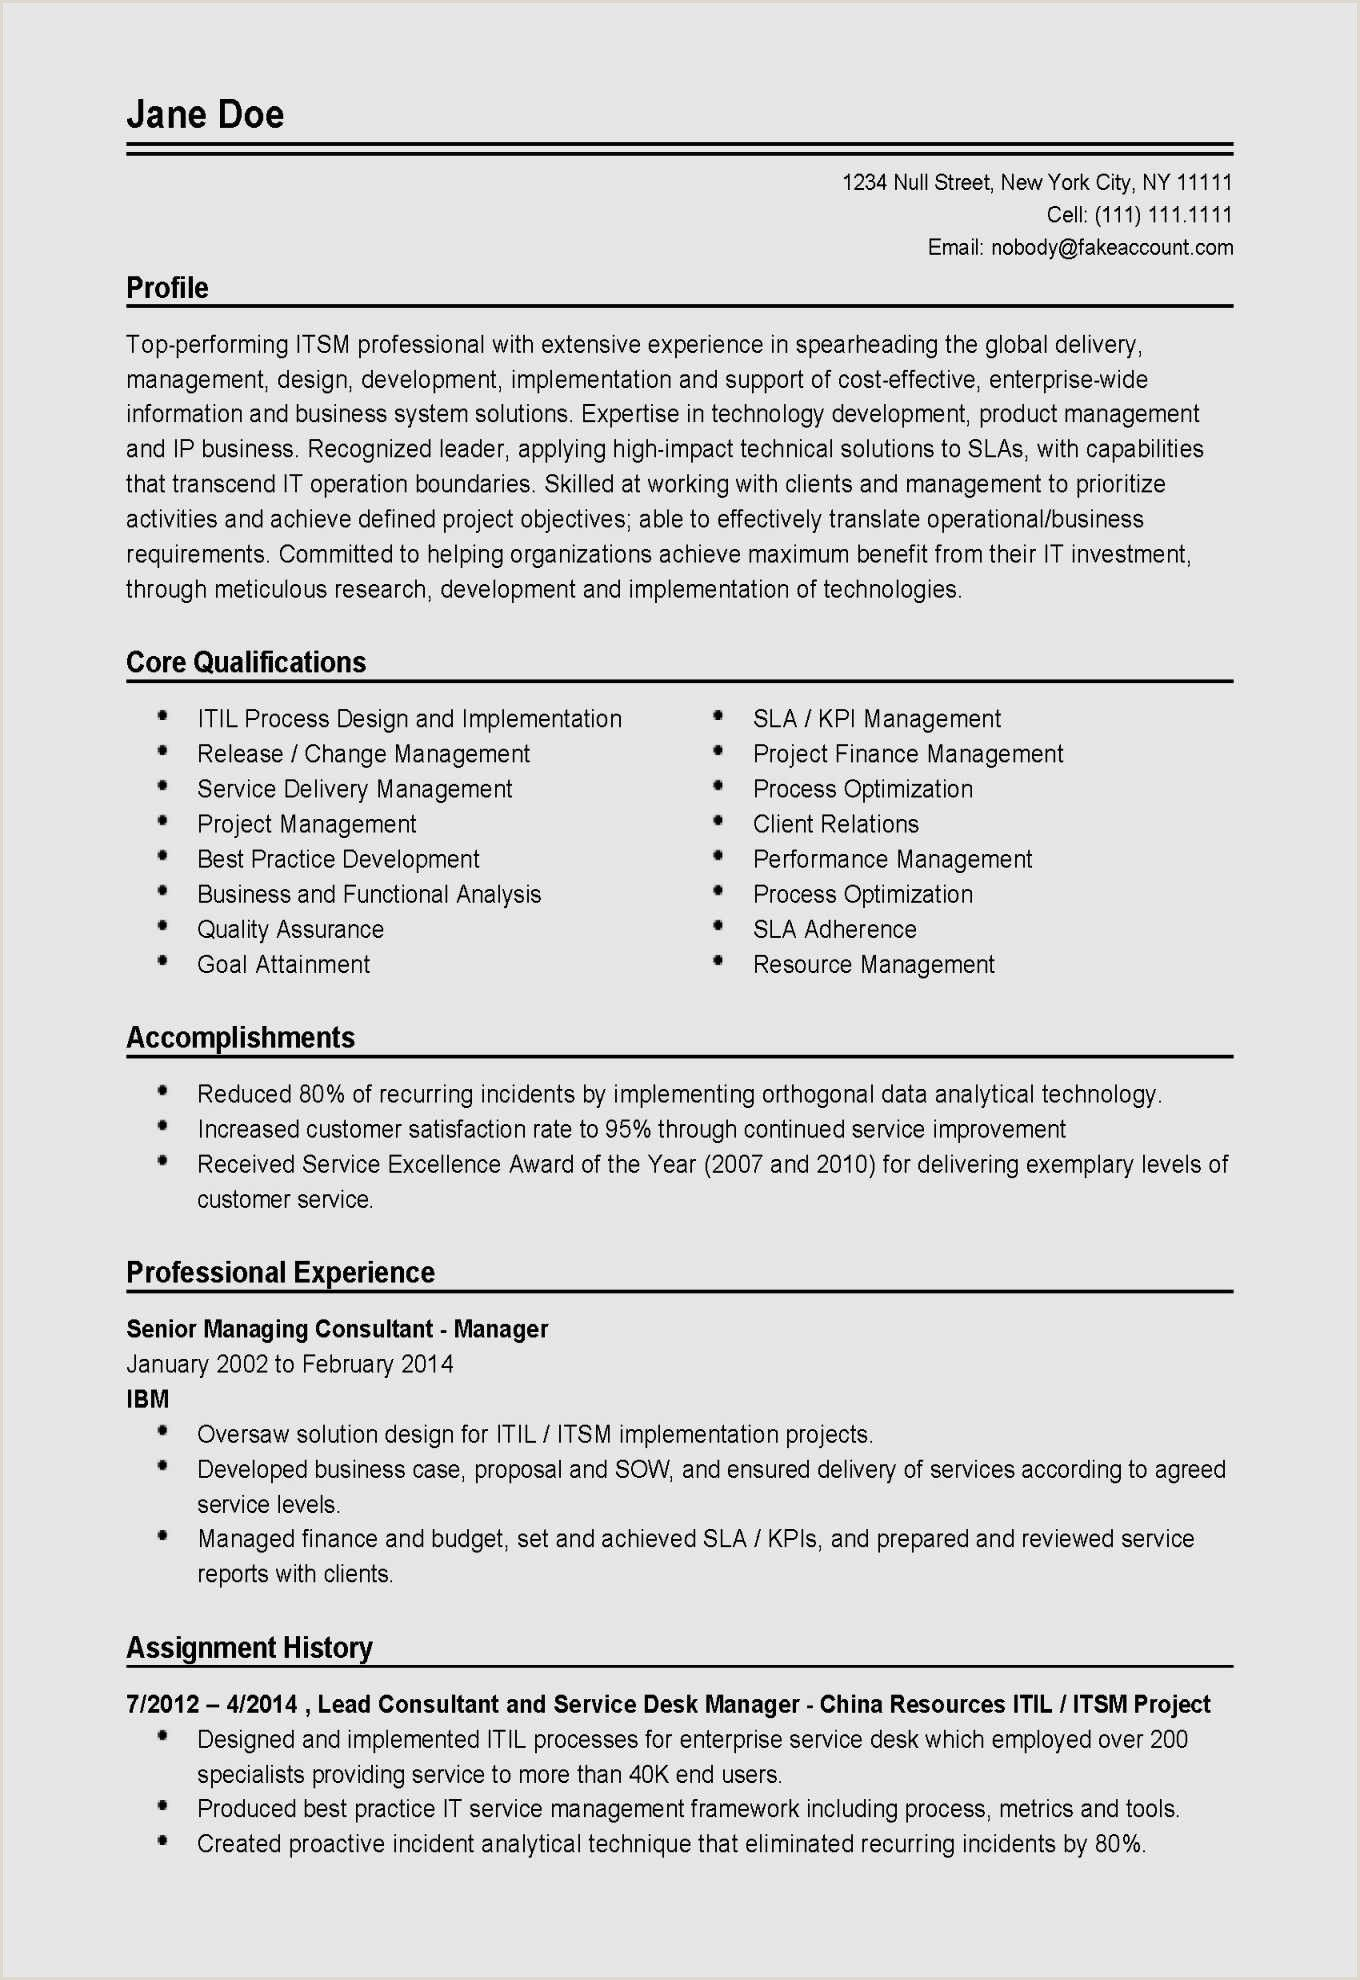 Latest Fresher Cv Format In 2020 Resume Examples Resume Cover